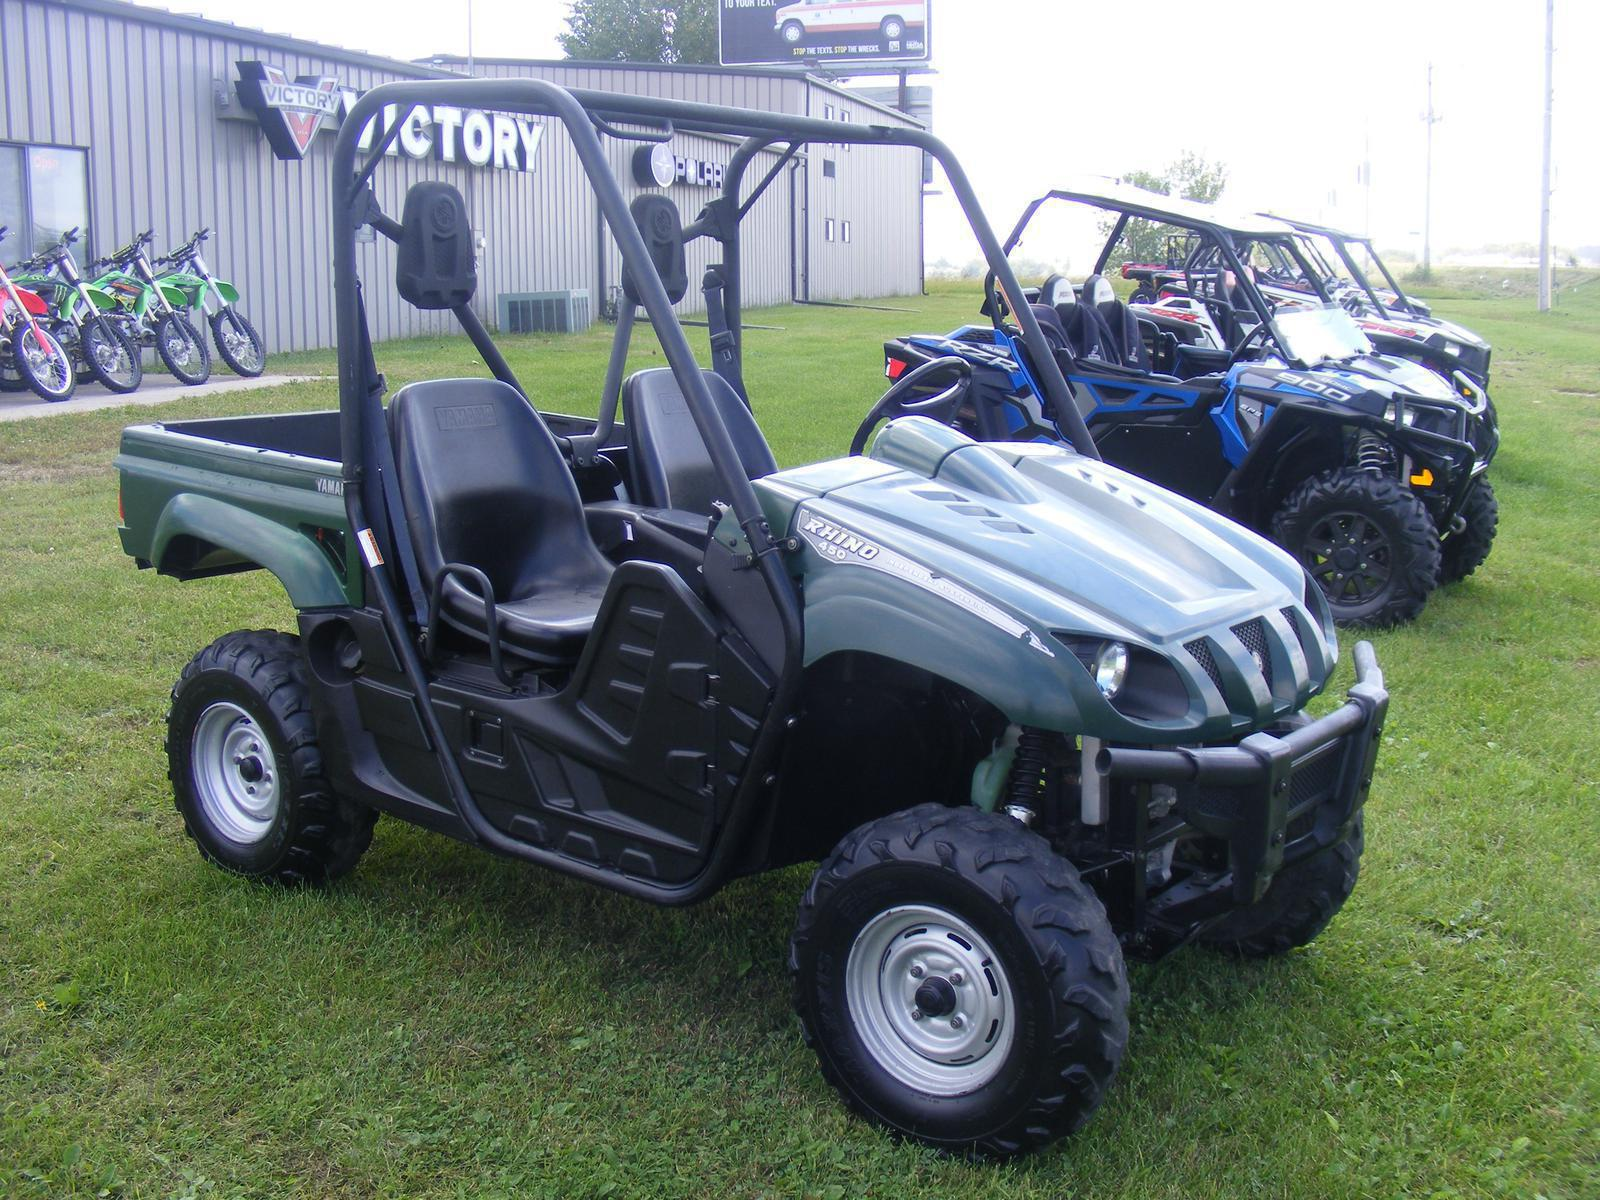 2007 Yamaha Rhino 450 For Sale In Fort Dodge Ia Racing Unlimited Fuel Filter Location Dscf6214